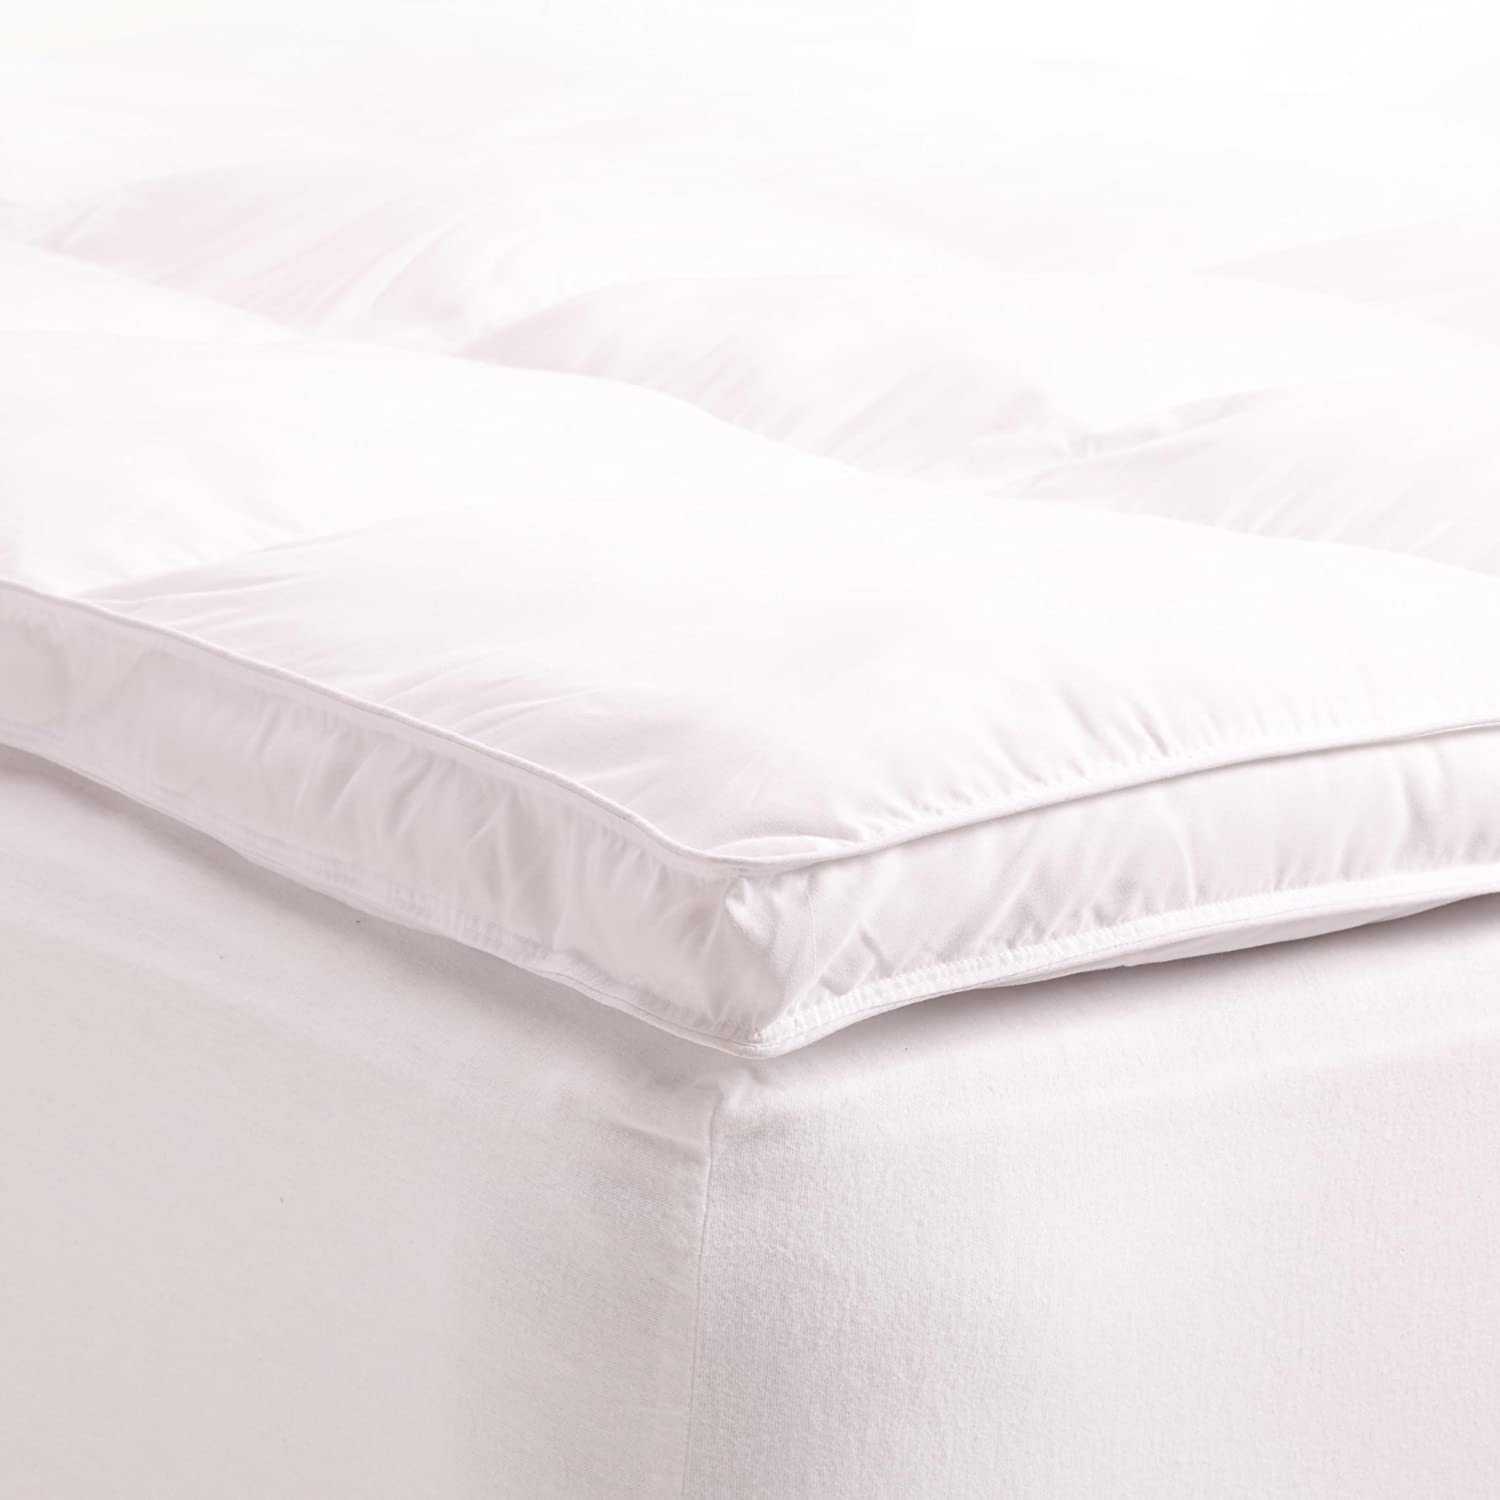 Superior King Mattress Topper, Hypoallergenic White Down Alternative Featherbed Mattress Pad - Plush, Overfilled, and 2  Thick